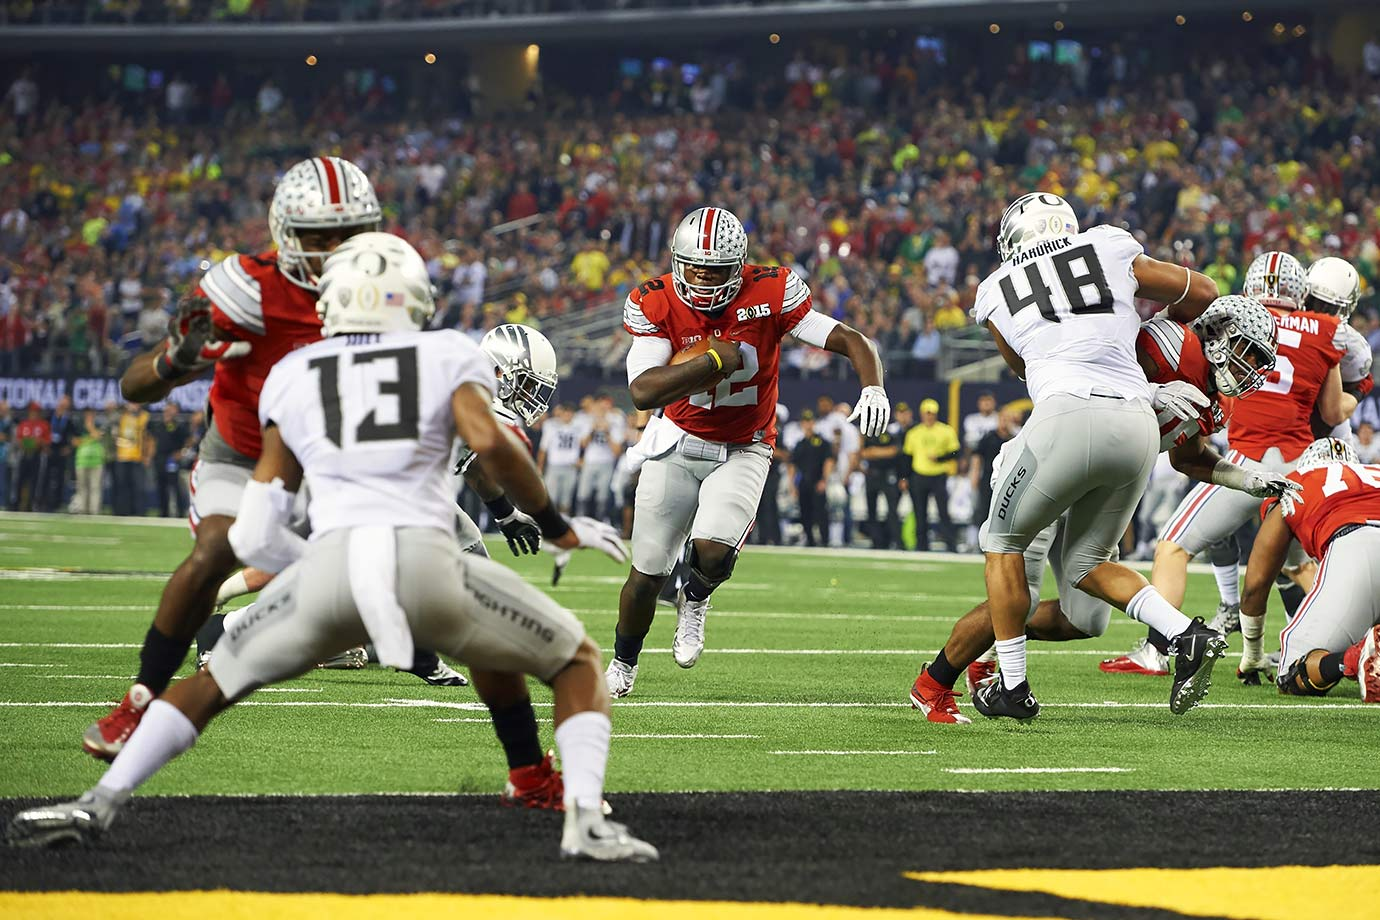 Despite being seeded fourth in the first year of the new College Football Playoff system, the Ohio State Buckeyes upset both Alabama and Oregon to win head coach Urban Meyer's third national championship. The Buckeyes were led by Cardale Jones, who started the 2014 season behind Braxton Miller and J.T. Barrett, who both went down with season-ending injuries.